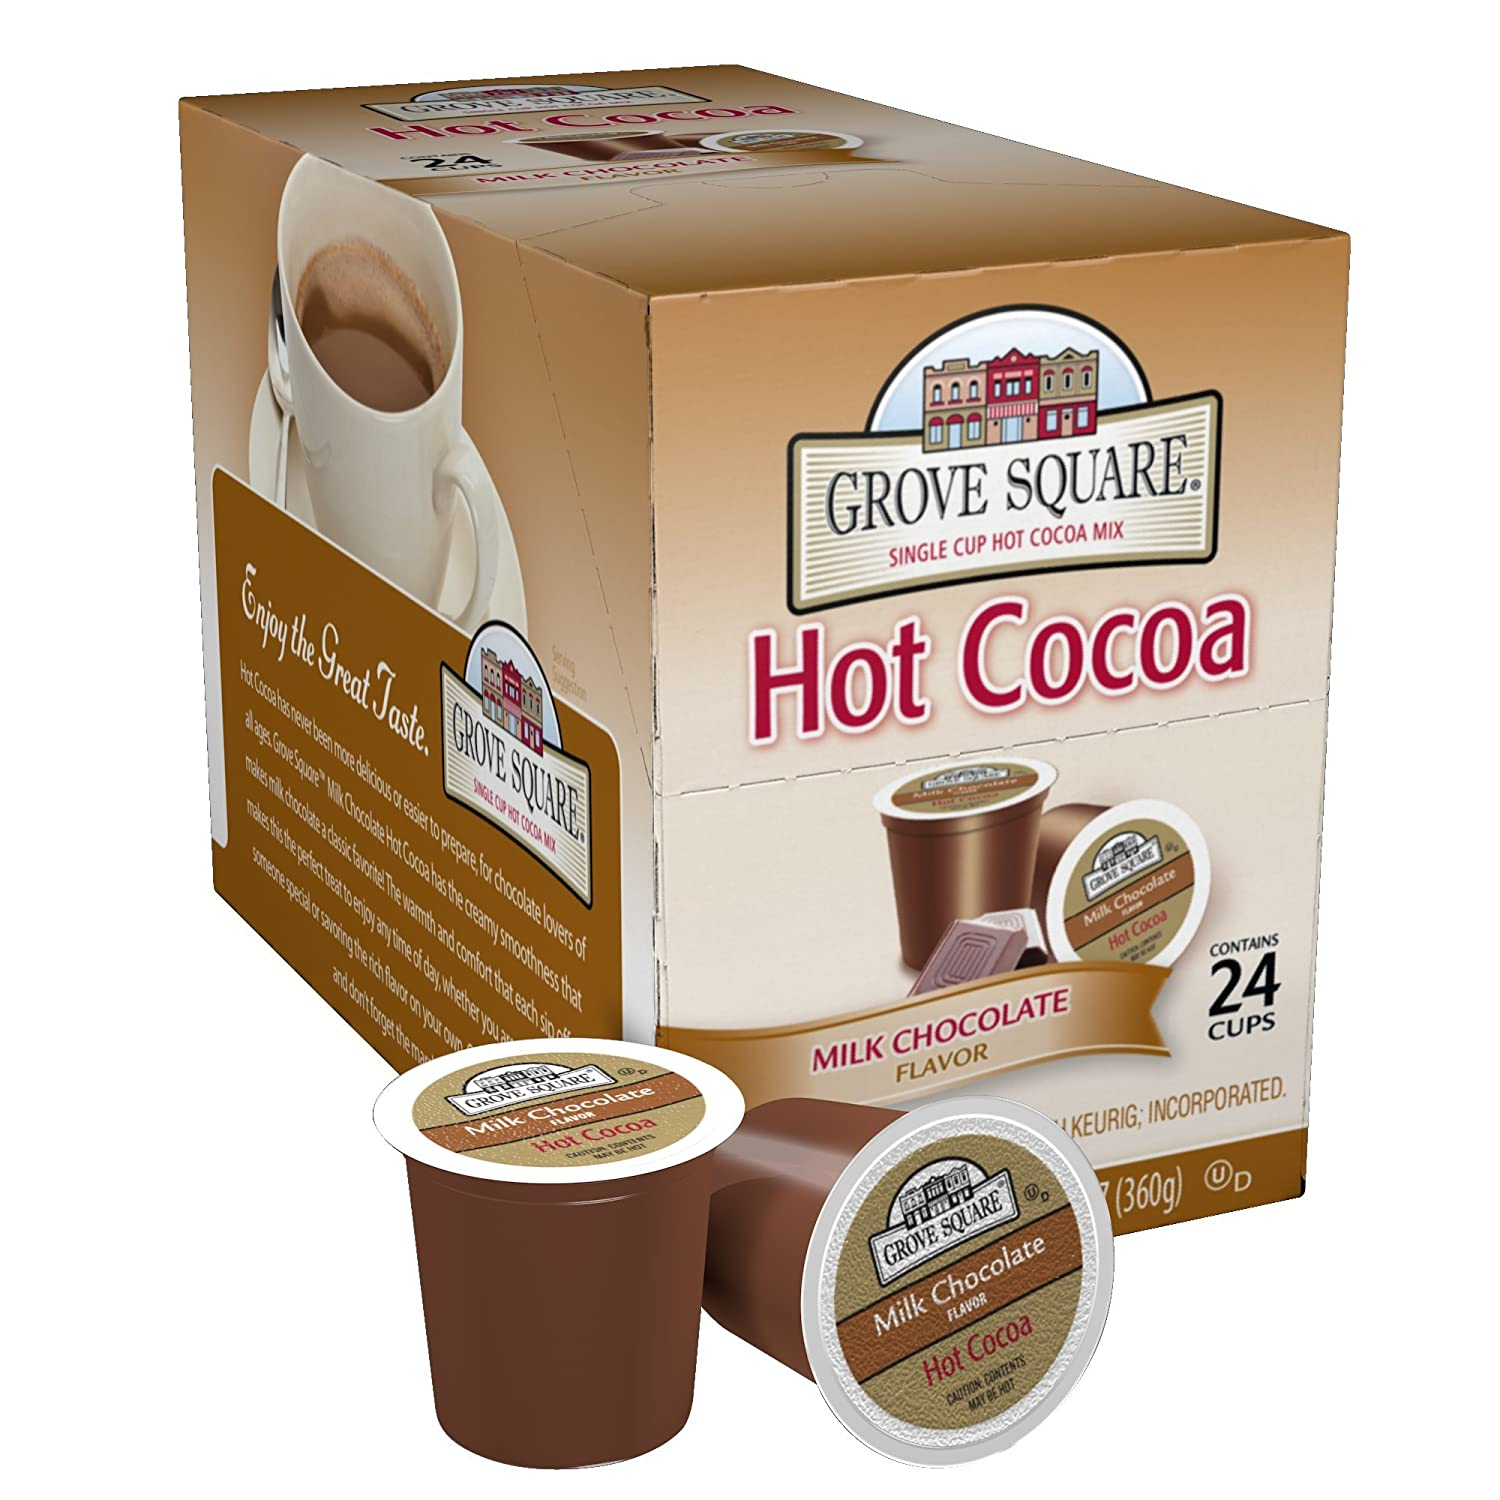 Grove Square Hot Cocoa, Milk Chocolate, 24 count